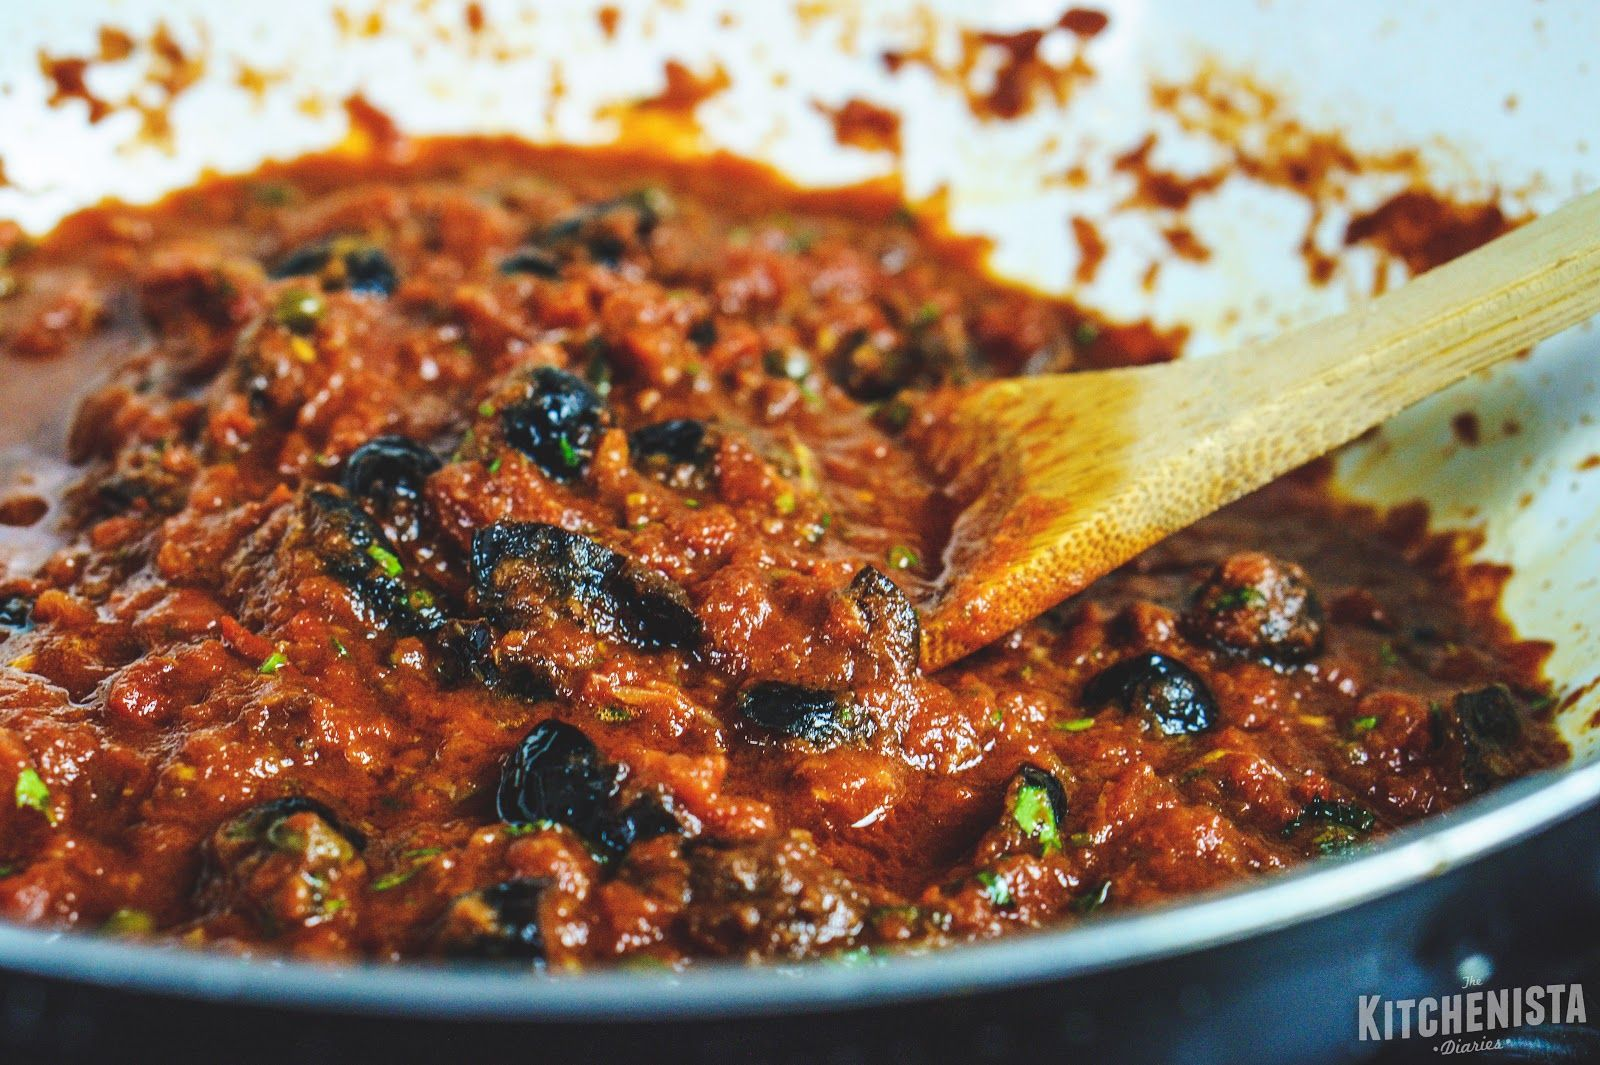 Puttanesca sauce is a robust, spicy tomato sauce flavored with an abundance of garlic, anchovies, olives and capers. Use it for pasta, fish or other proteins. Whole 30 and paleo compliant.